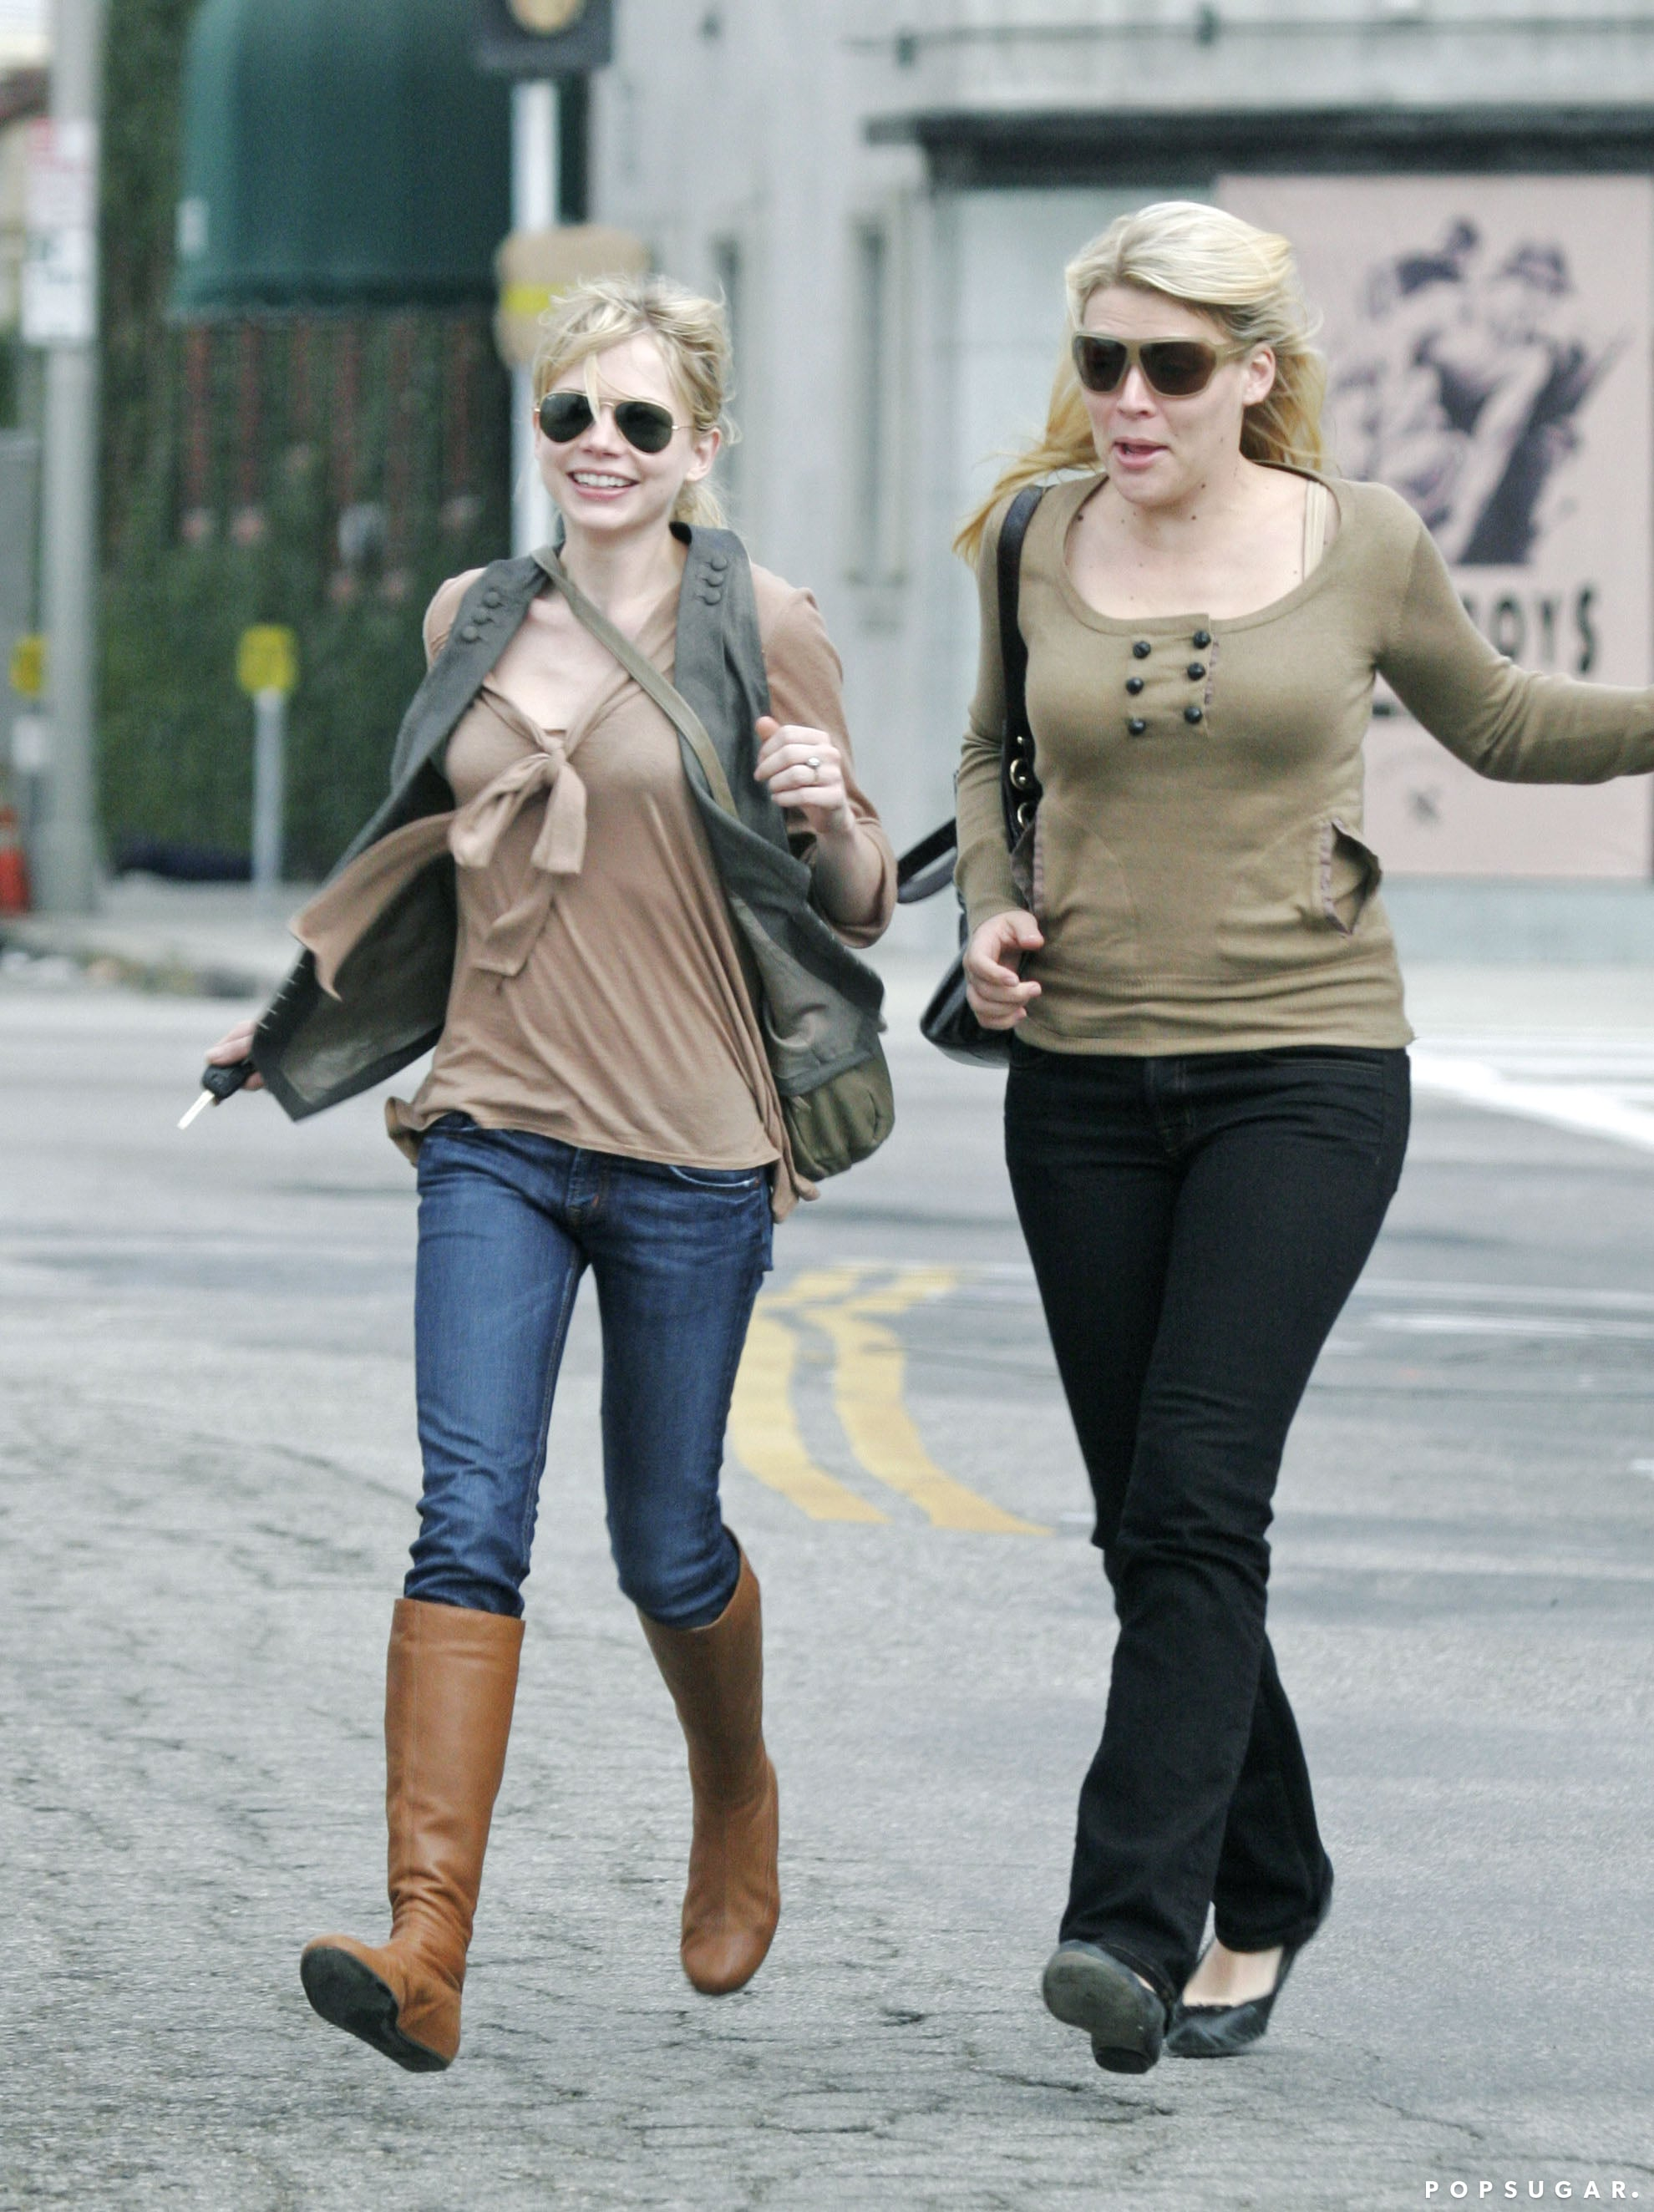 Best friends Busy Philipps and Michelle Williams went shopping together in 2006 in LA.